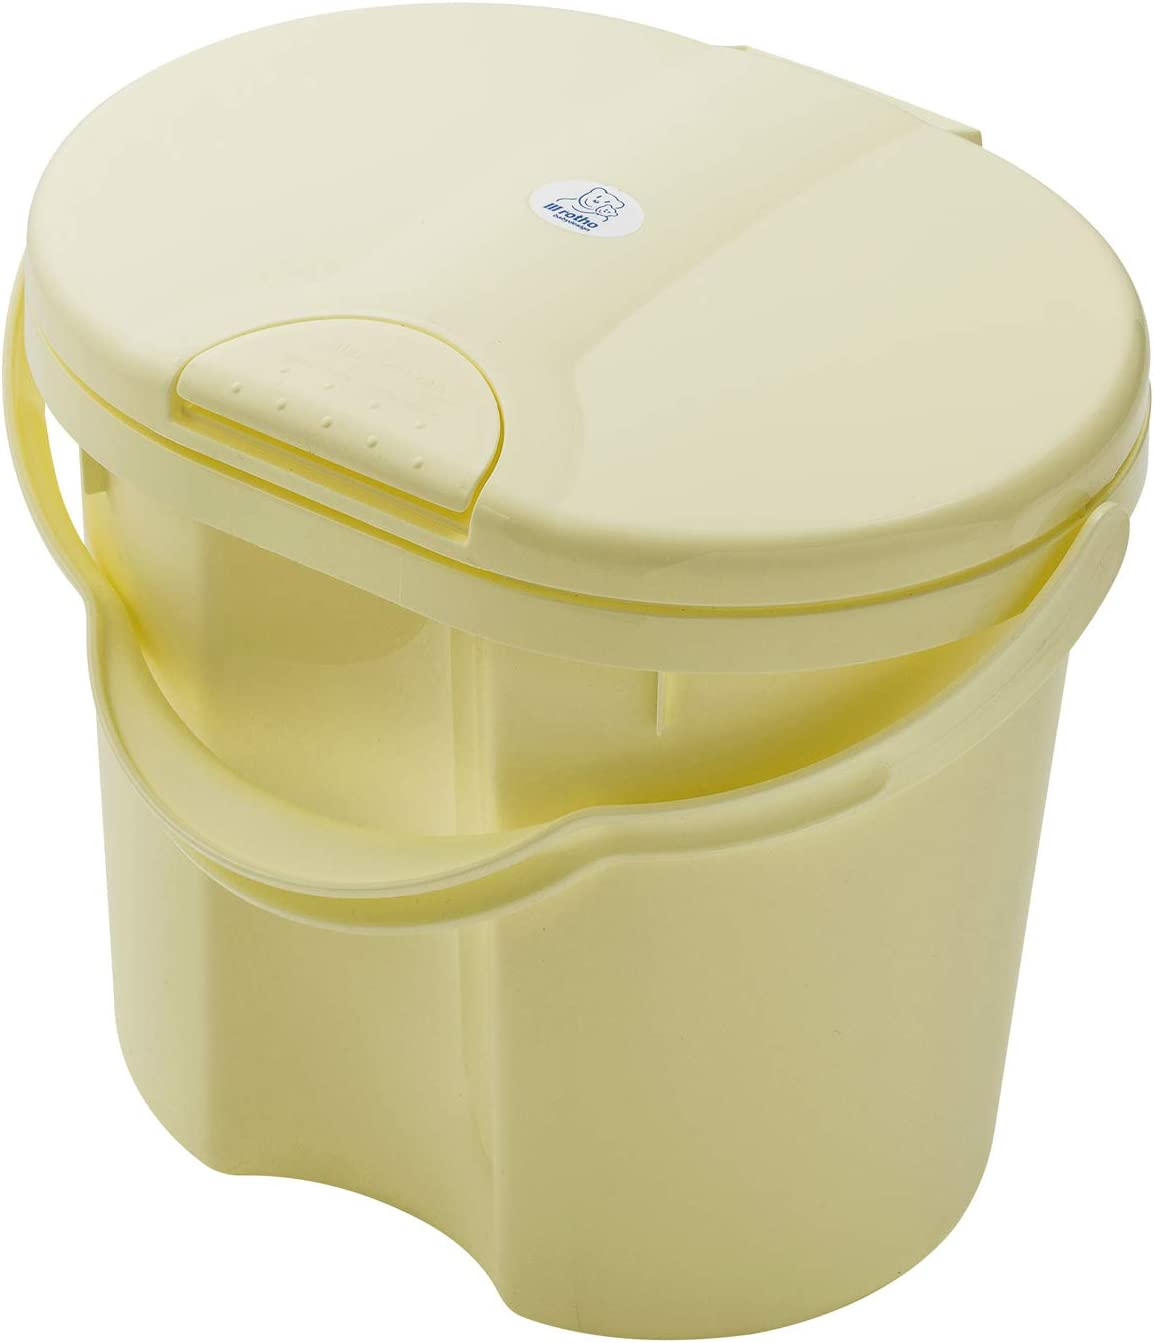 Yellow Delight 20002 0290 11l with Lid Rotho Babydesign TOP Nappy Pail 0+ Months